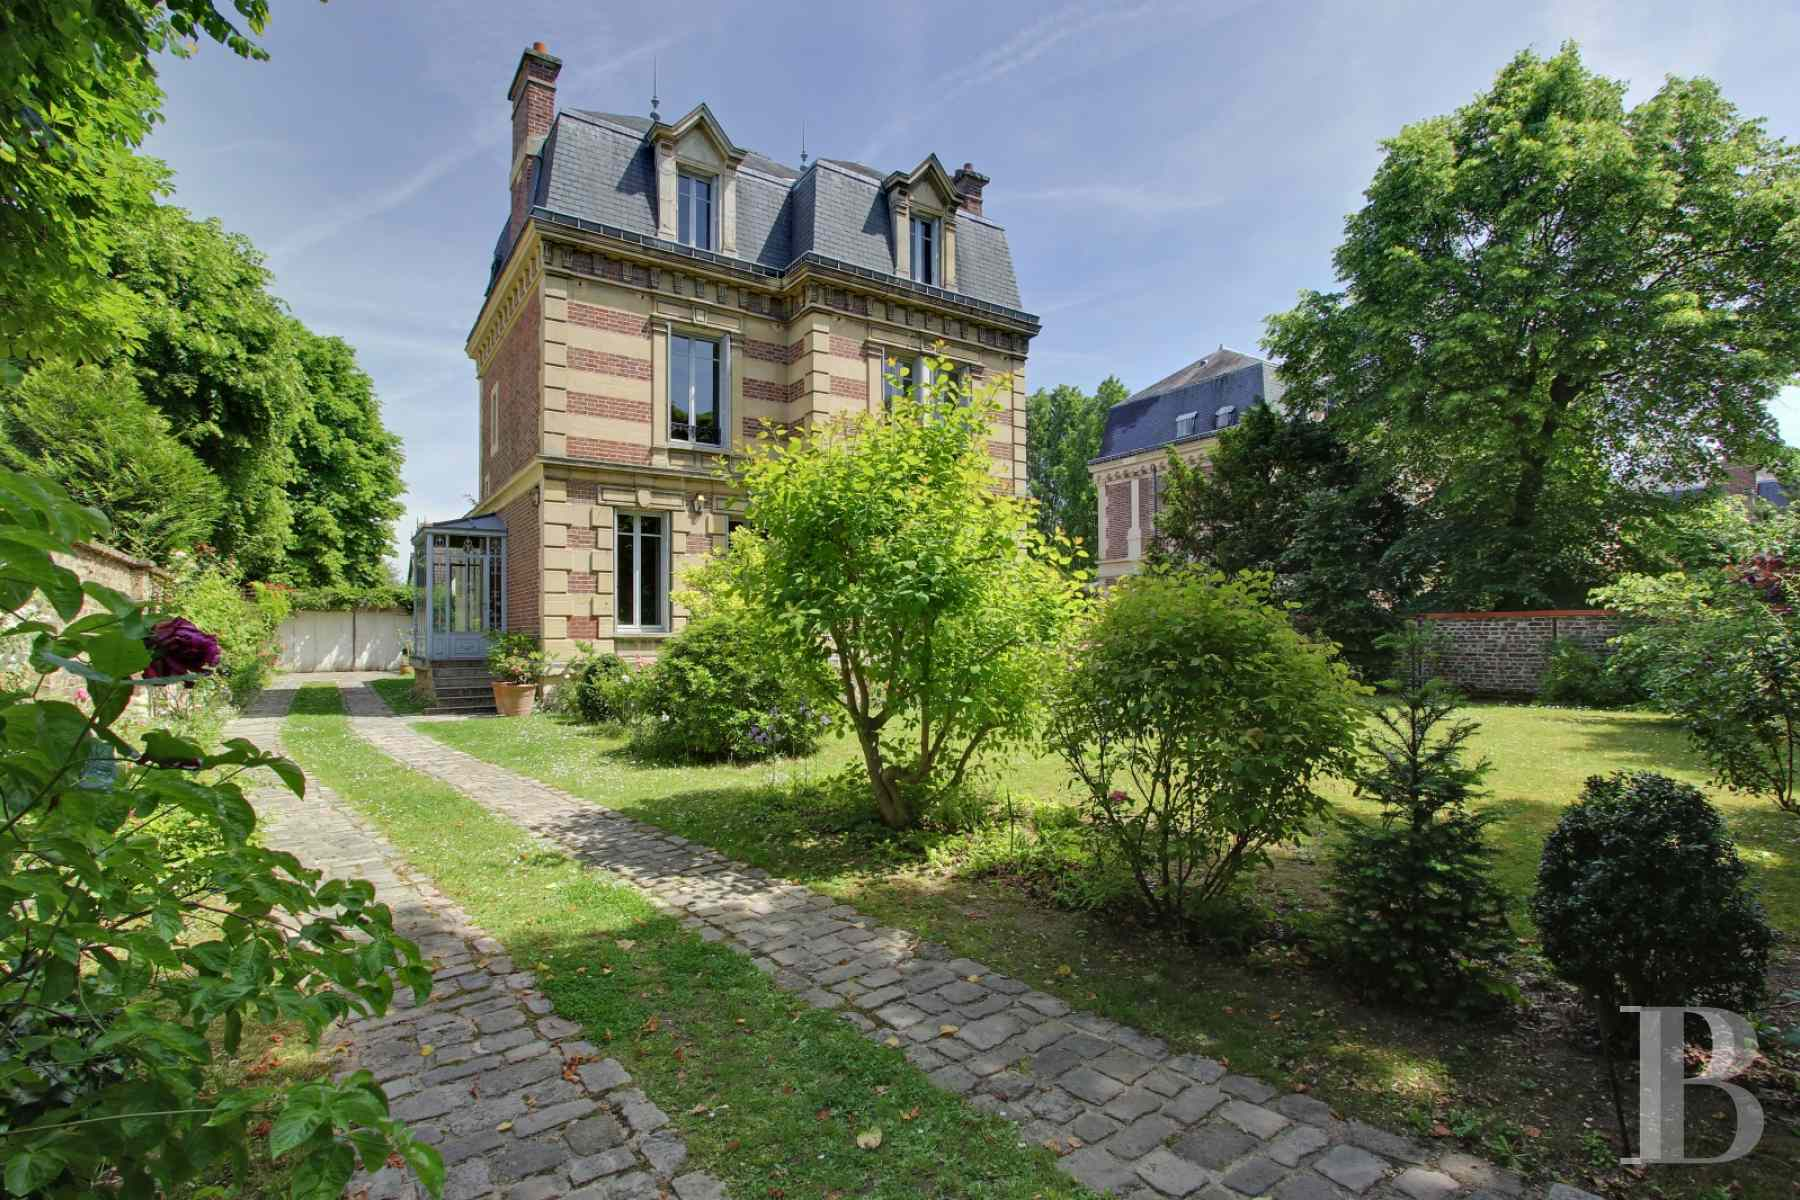 character properties France paris chatou property - 1 zoom